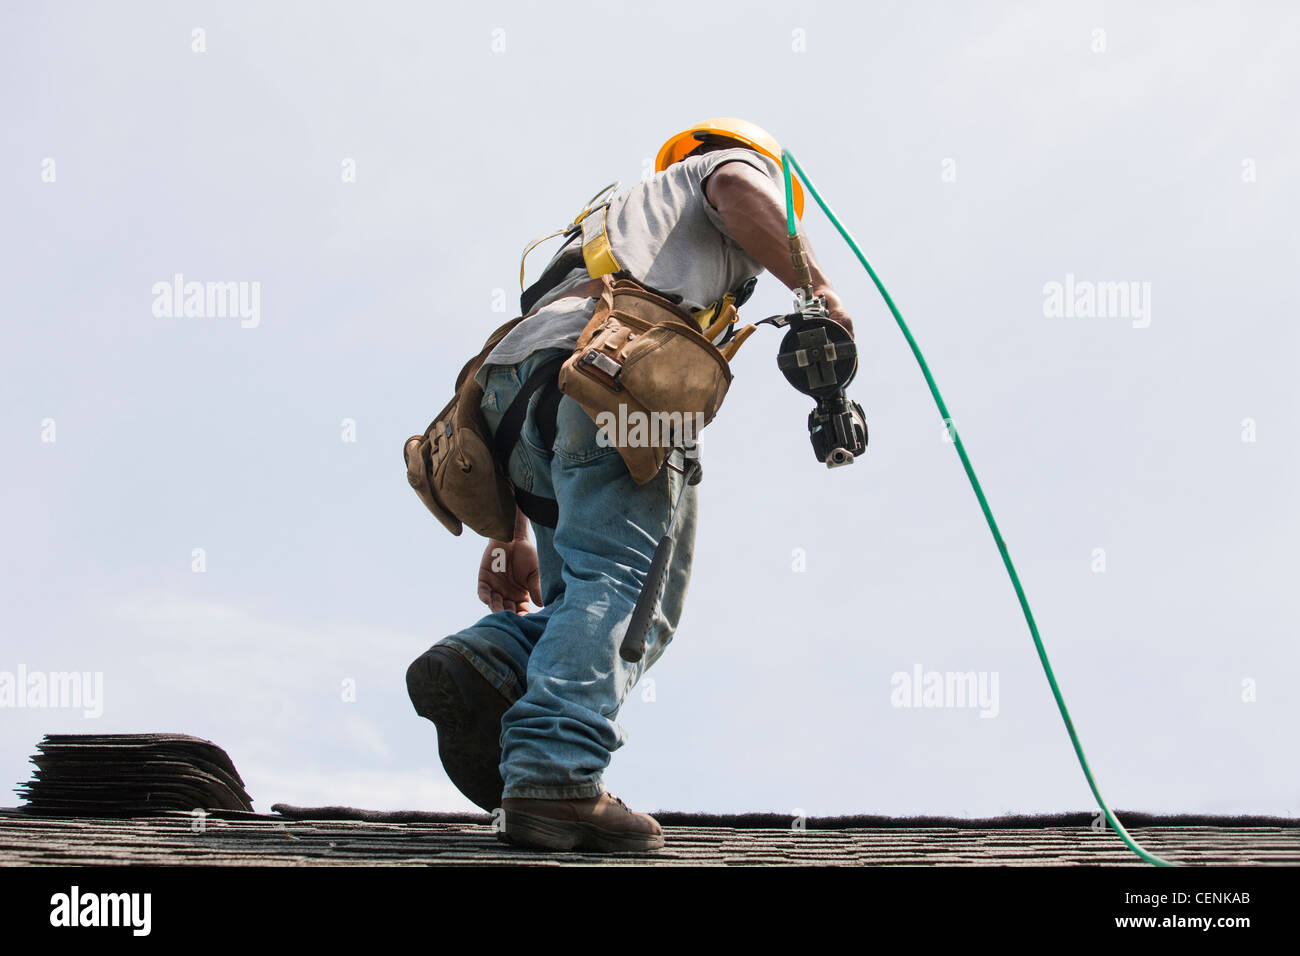 Roofer working on shingling a new roof - Stock Image